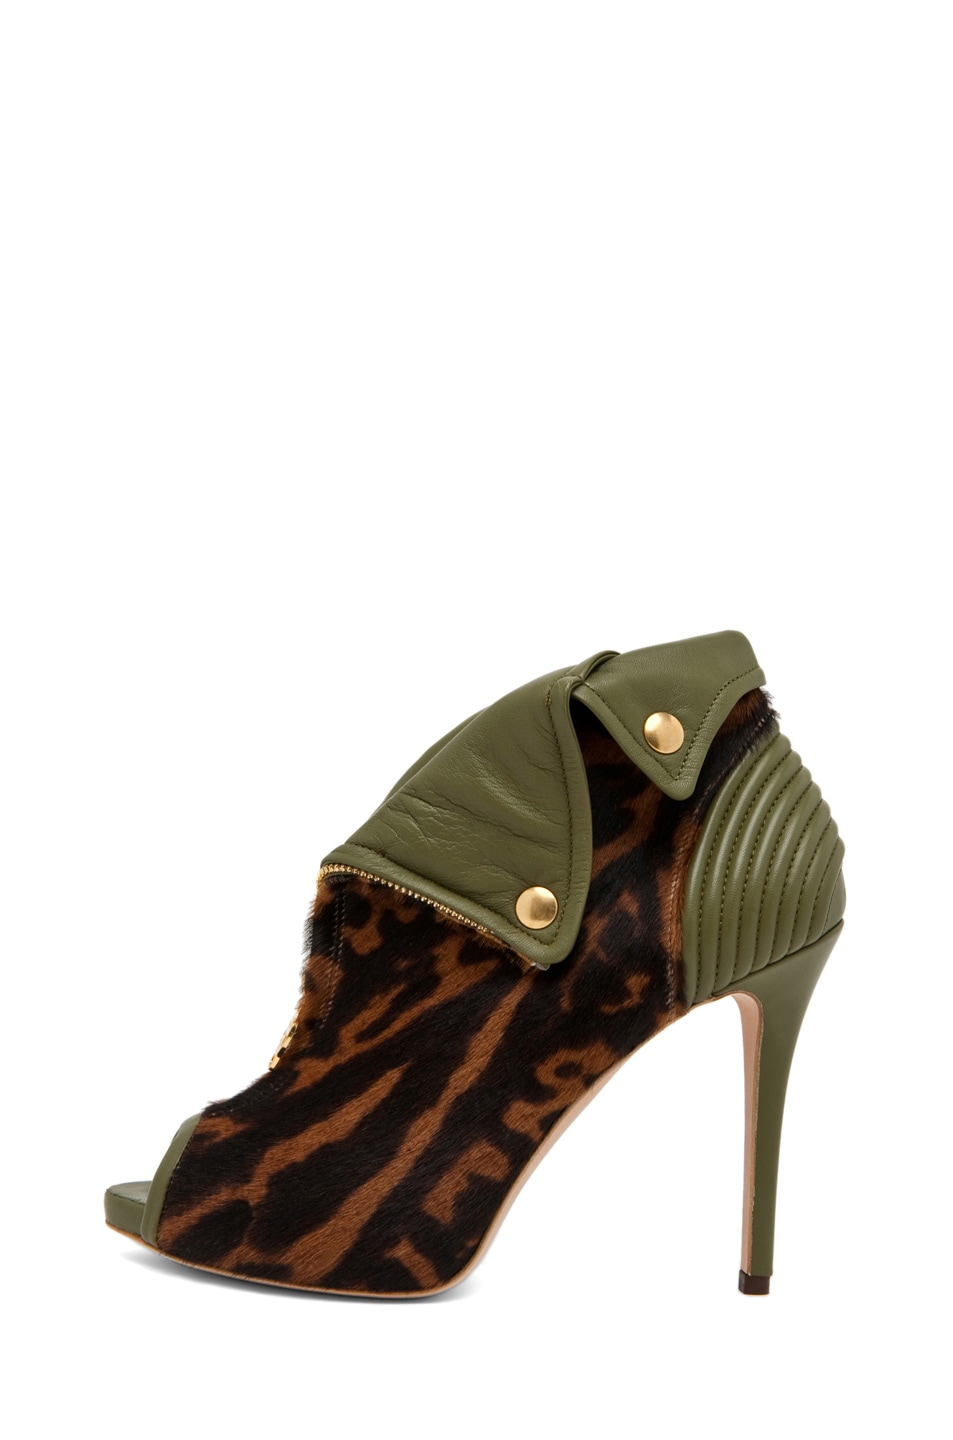 Image 1 of Alexander McQueen Zipper Bootie in Ocelot/Olive Green